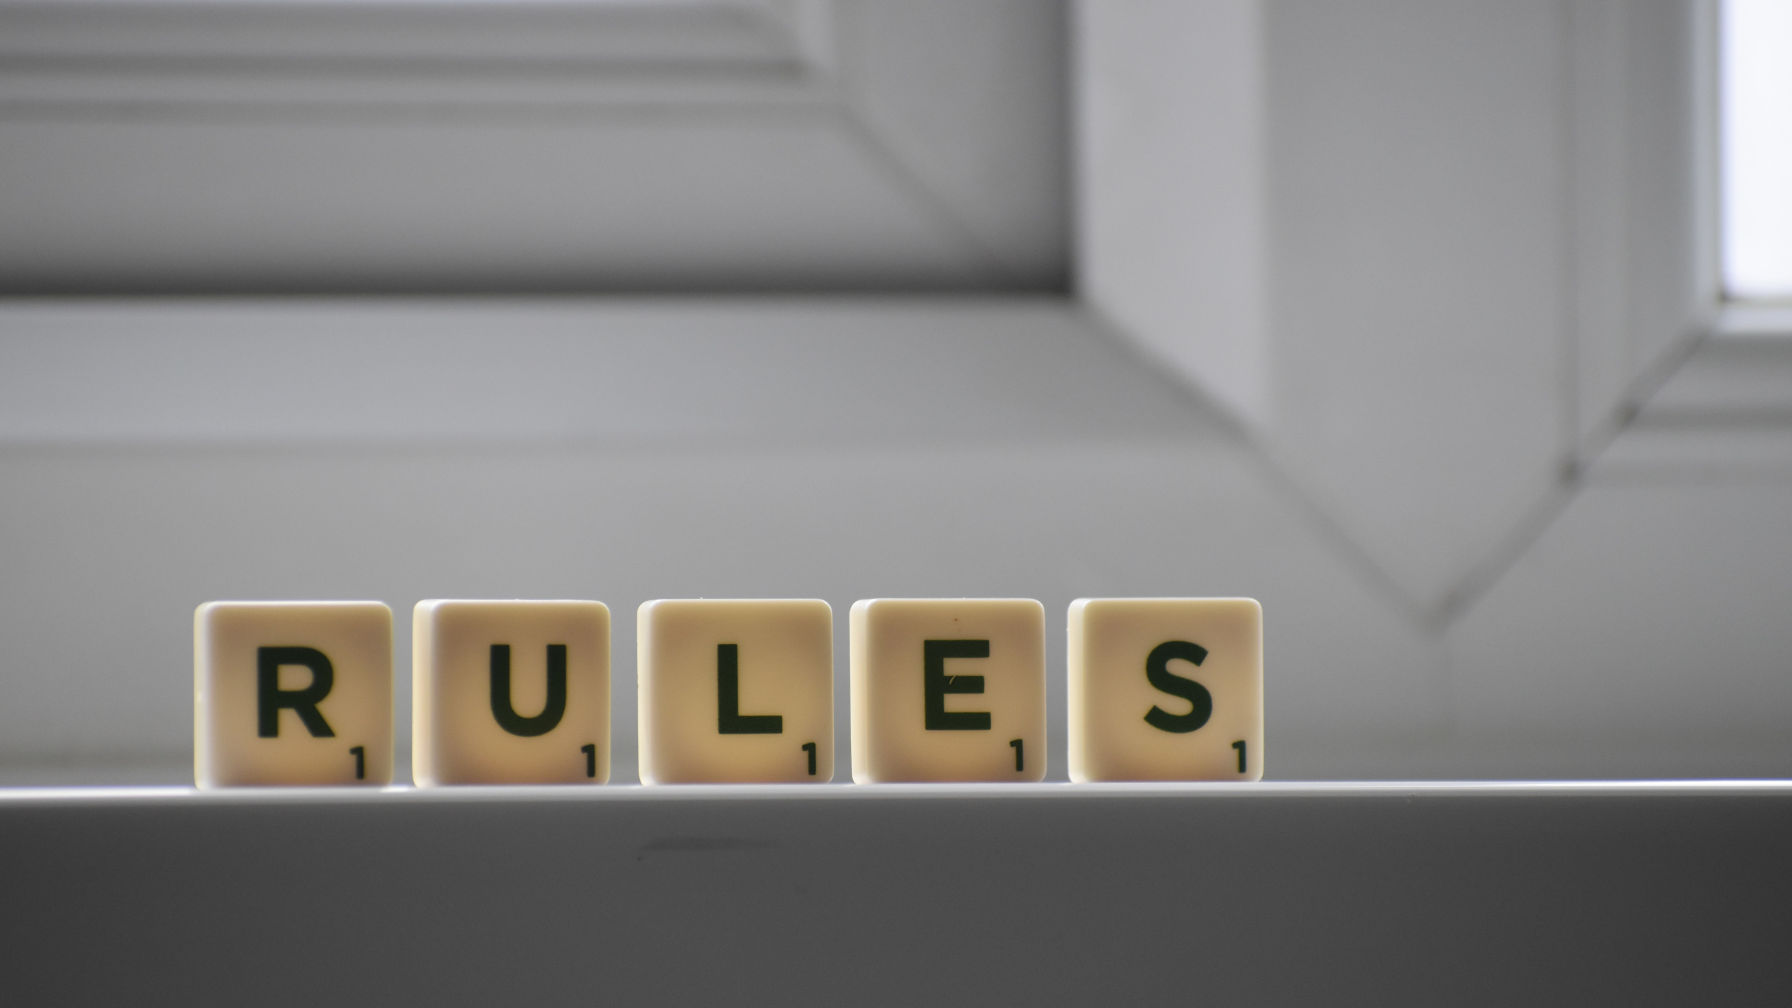 Decorative image that uses letters from the game of Scrabble to spell out 'RULES'.